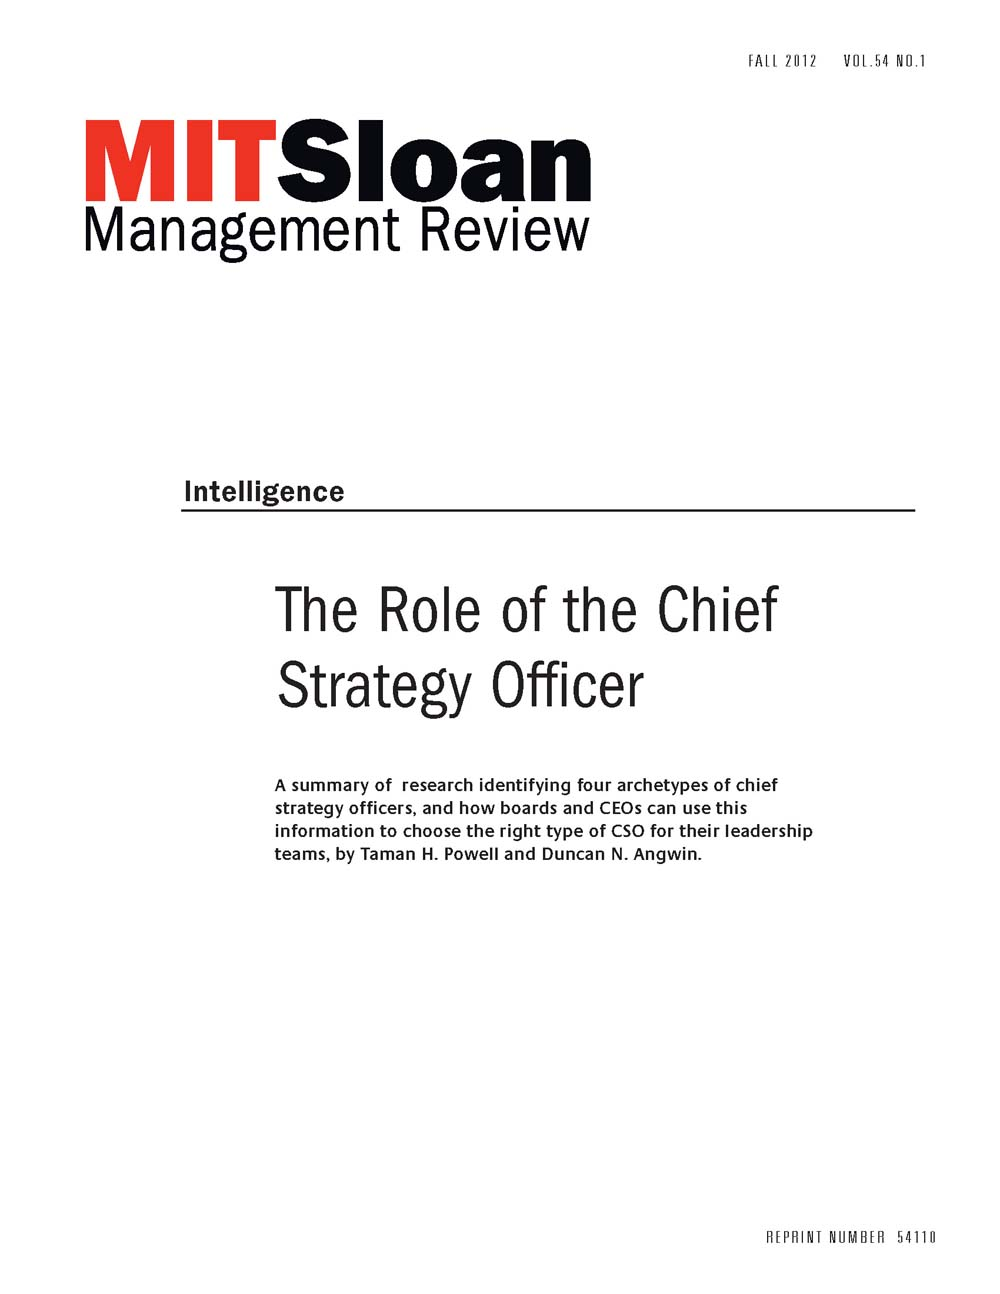 the role of the chief strategy officer mit smr store - Chief Strategy Officer Job Description